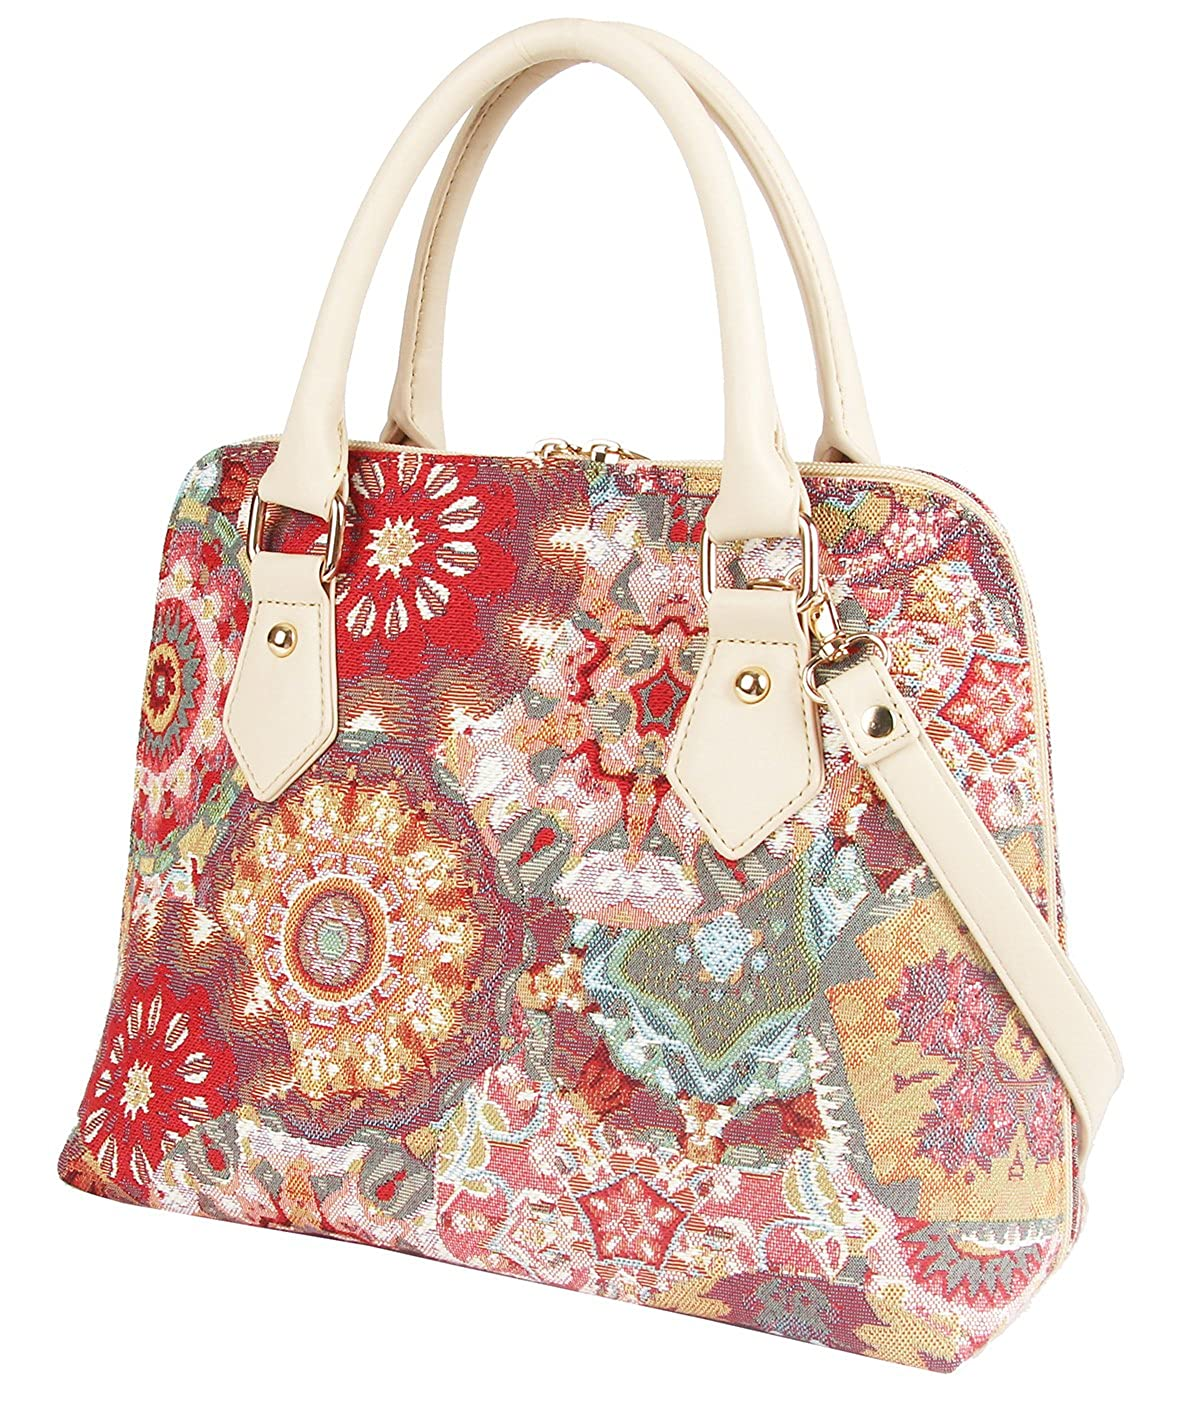 b596479d36cc Signare Pink Kaleidoscope Women s Fashion Canvas Tapestry Top Handle Handbag  with Detachable Strap to Convert to Shoulder Bag (Conv-Kale)